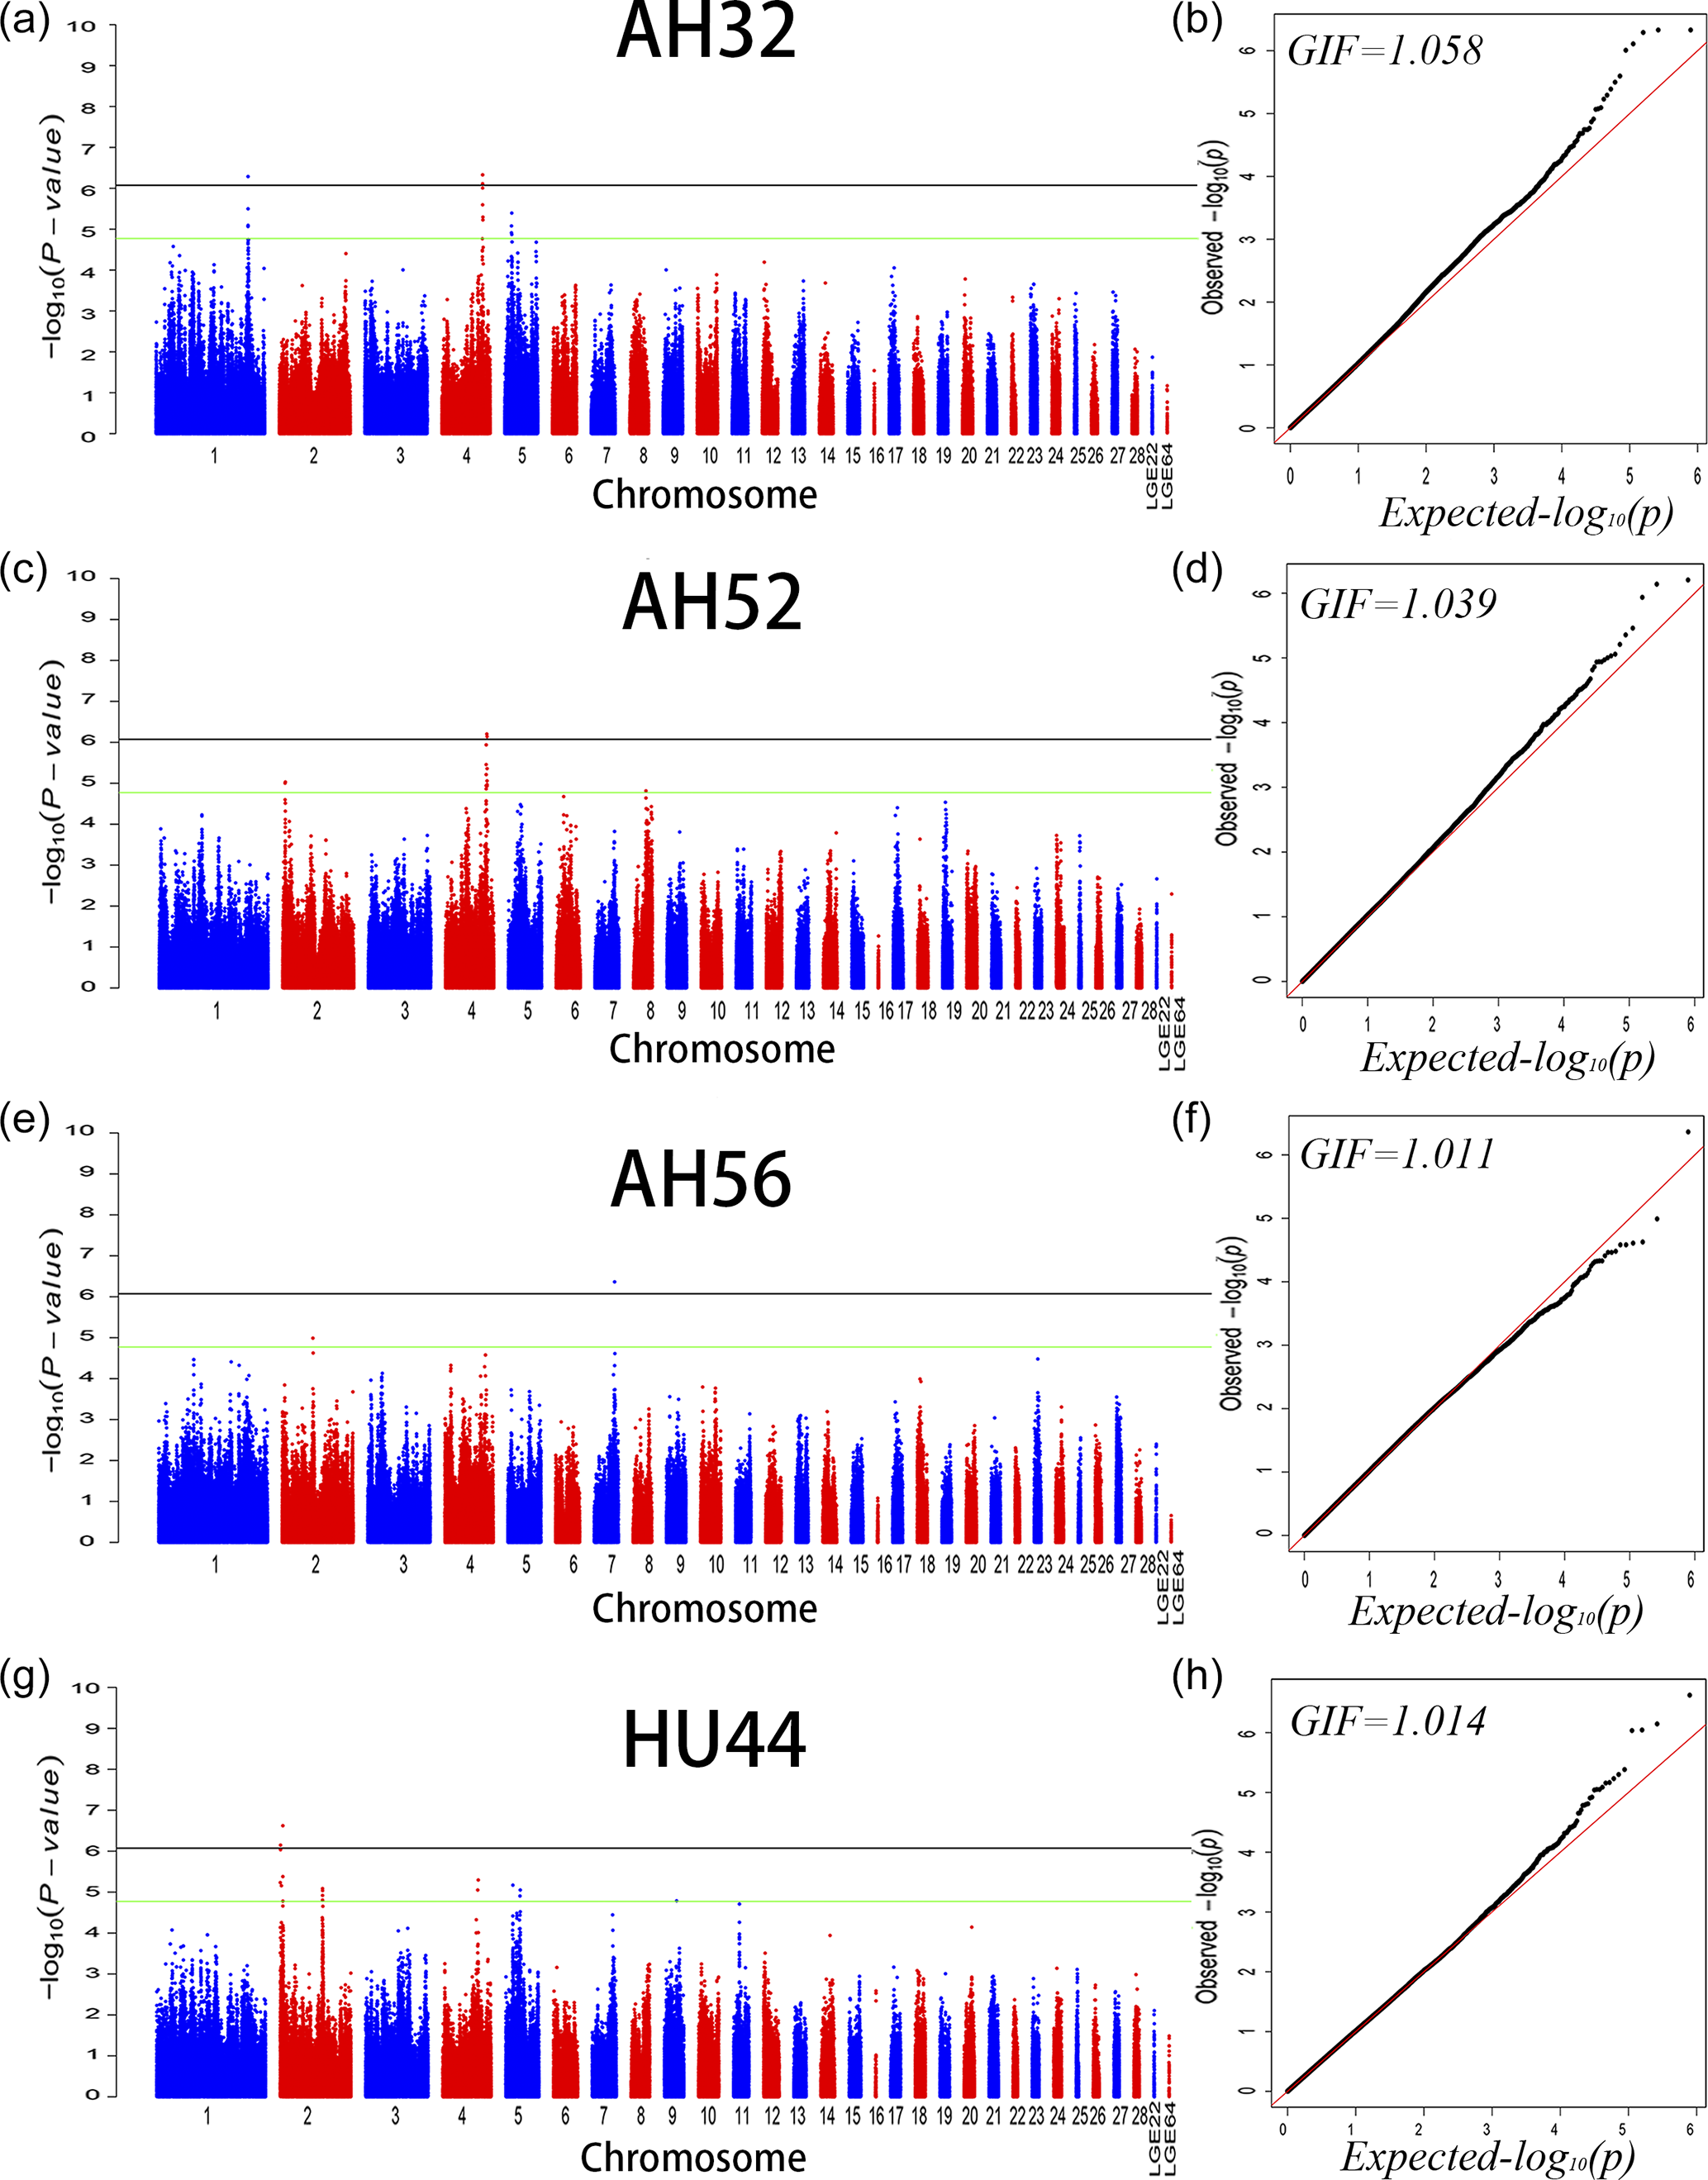 AAB - Identification of potential genomic regions and